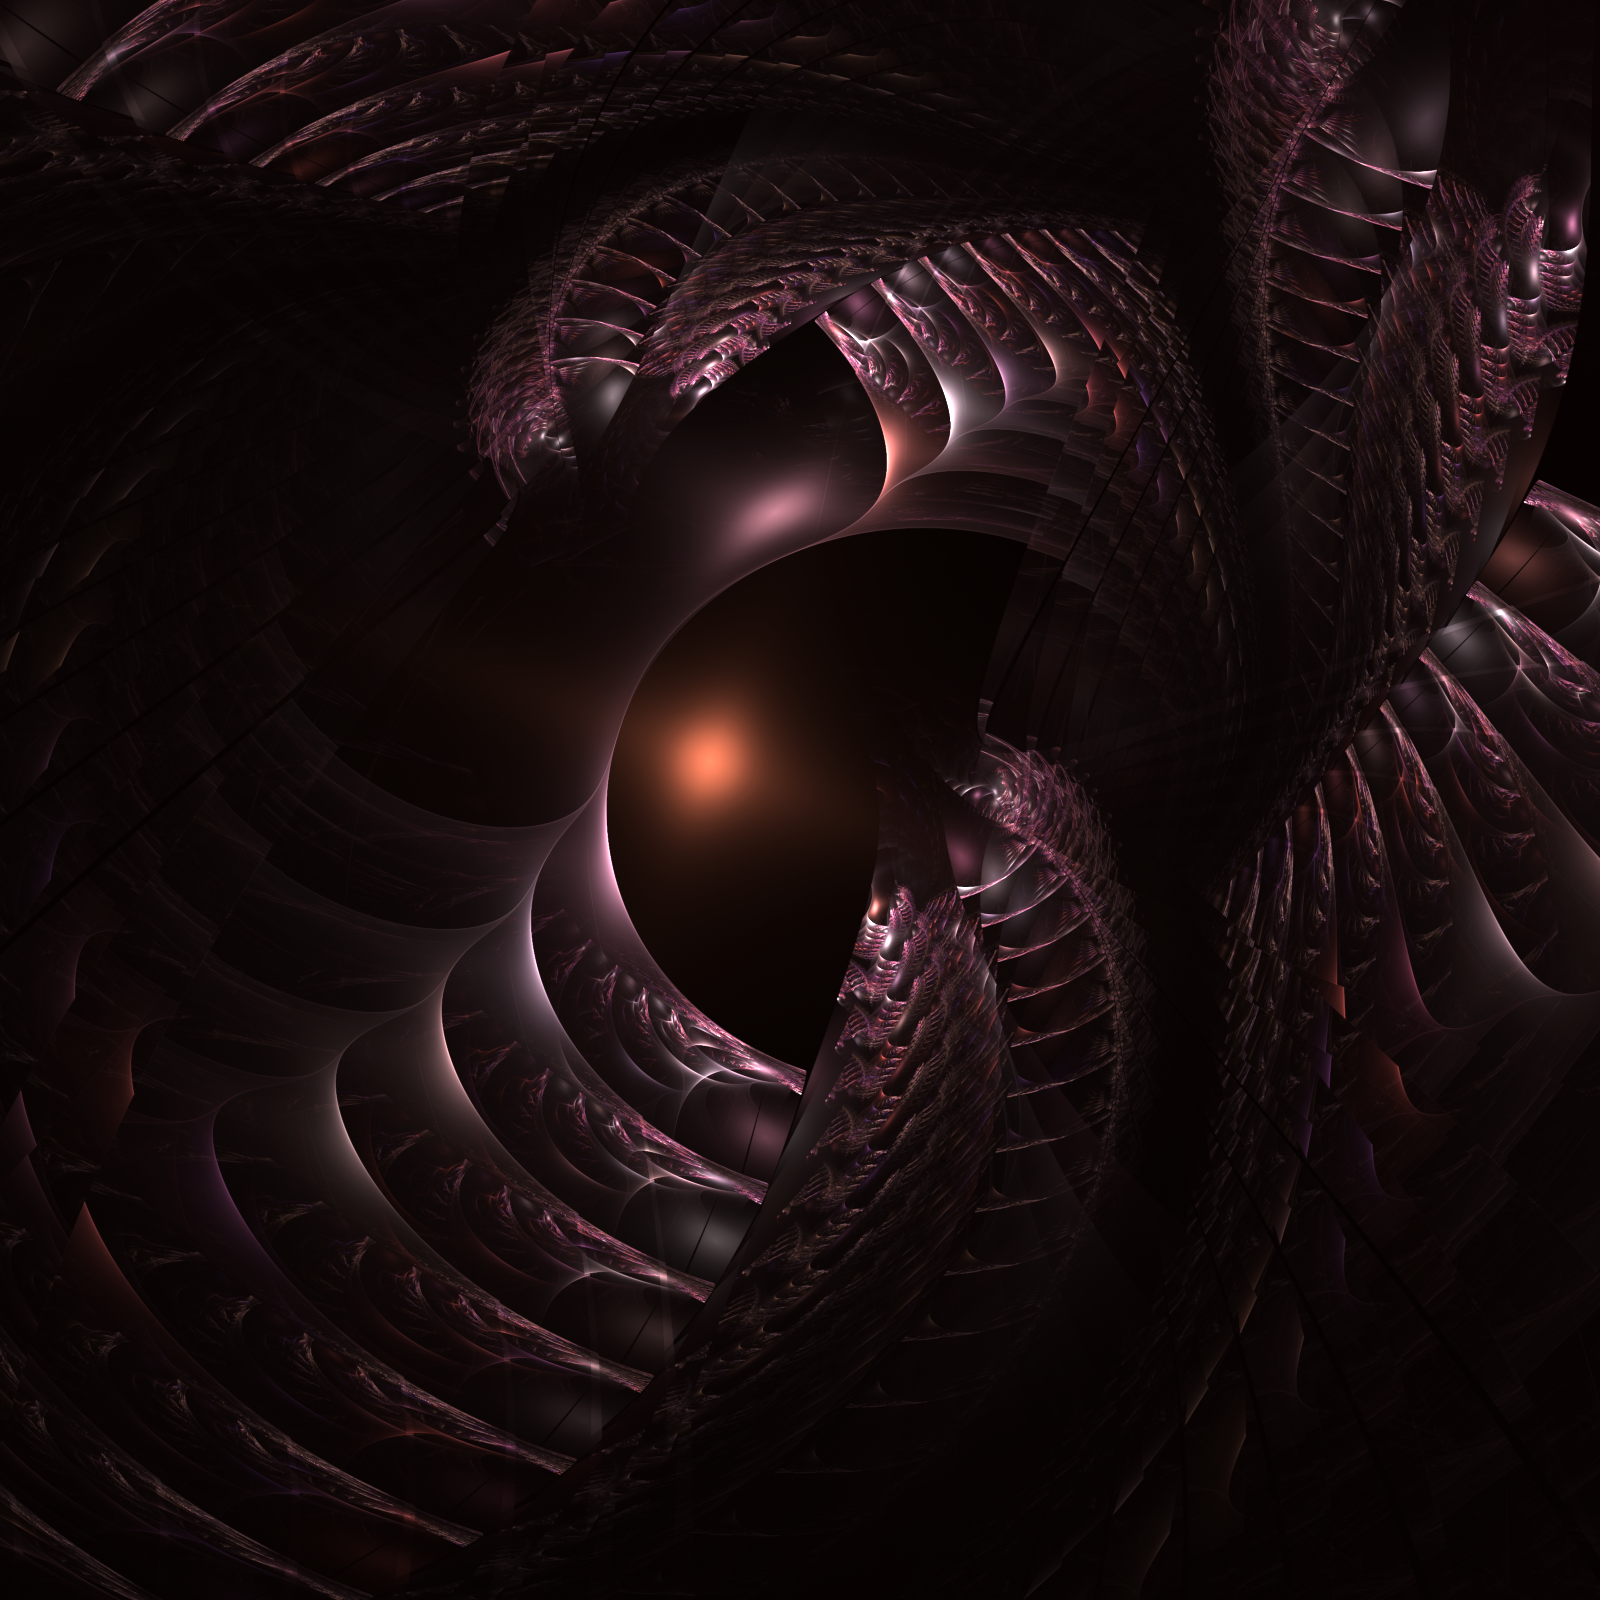 Biomechanical by EternalNight11 on DeviantArt